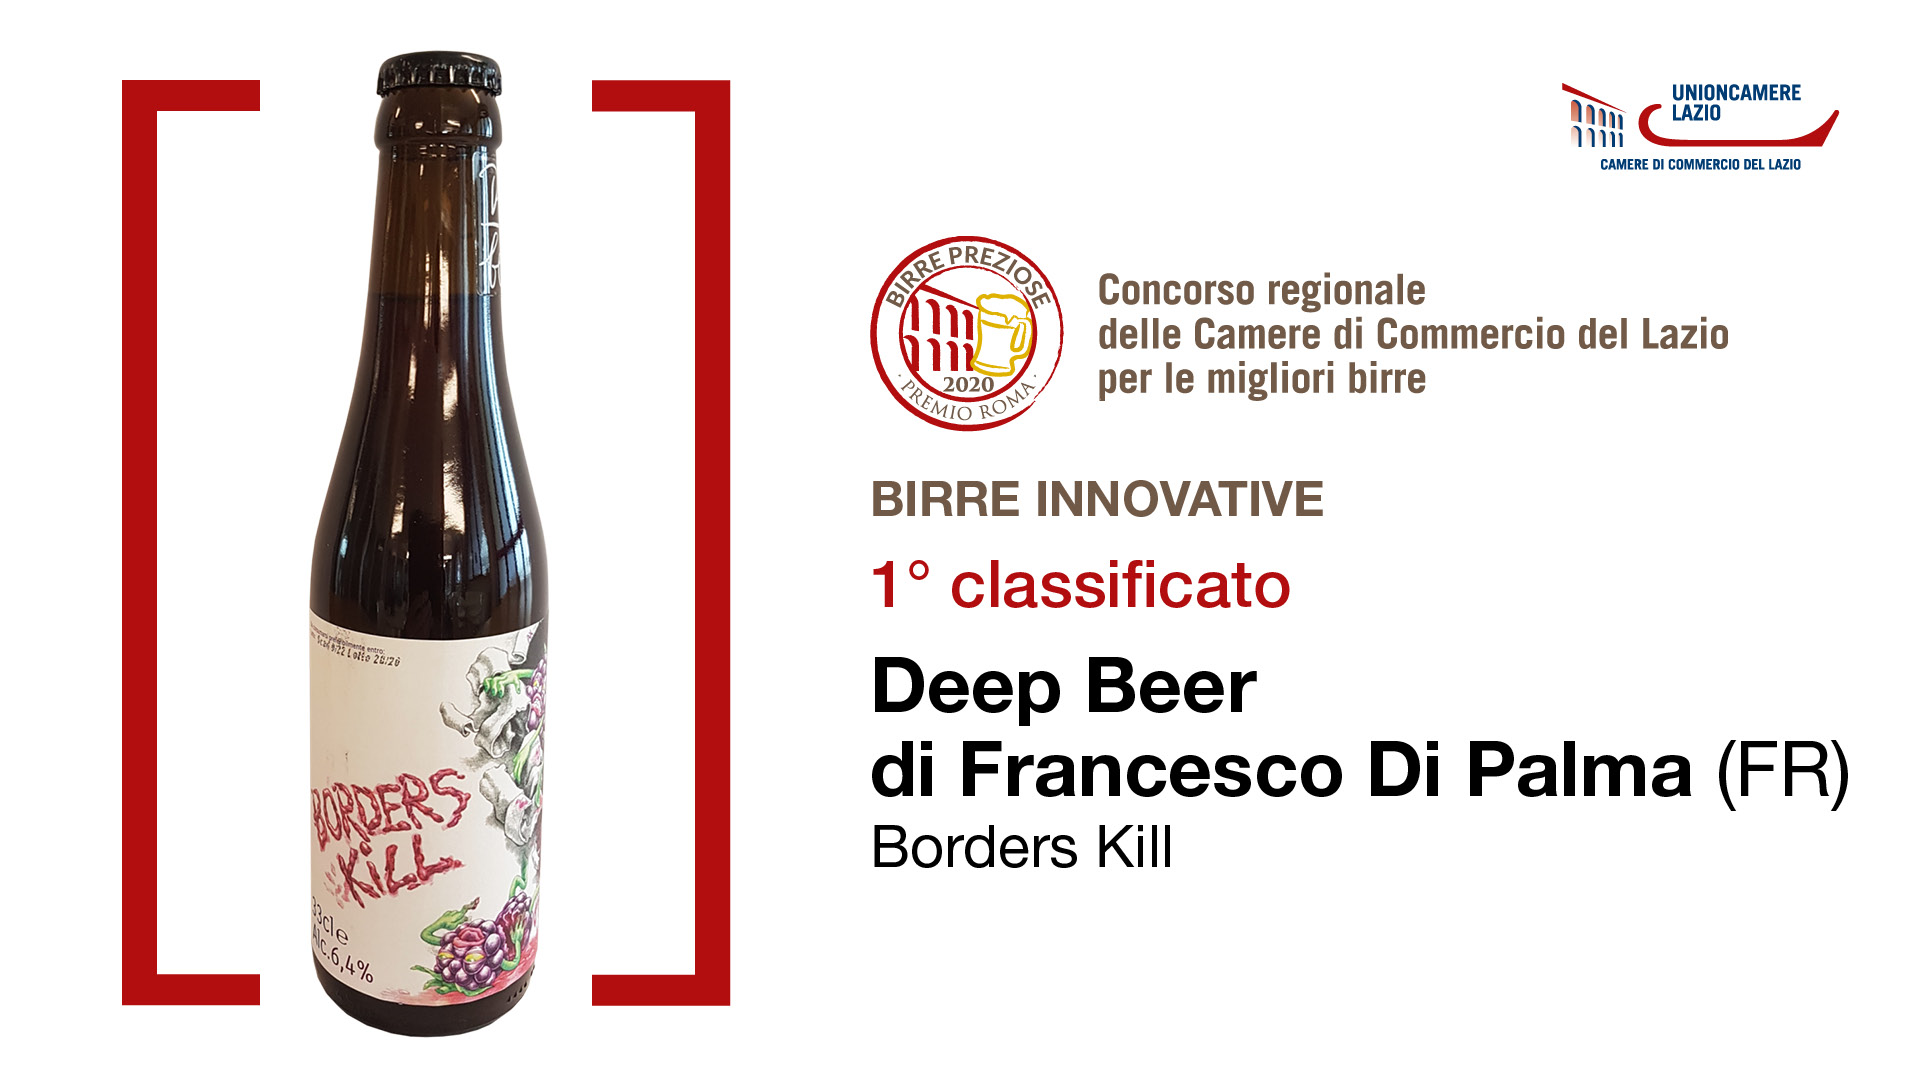 Deep Beer di Francesco Di Palma (FR)